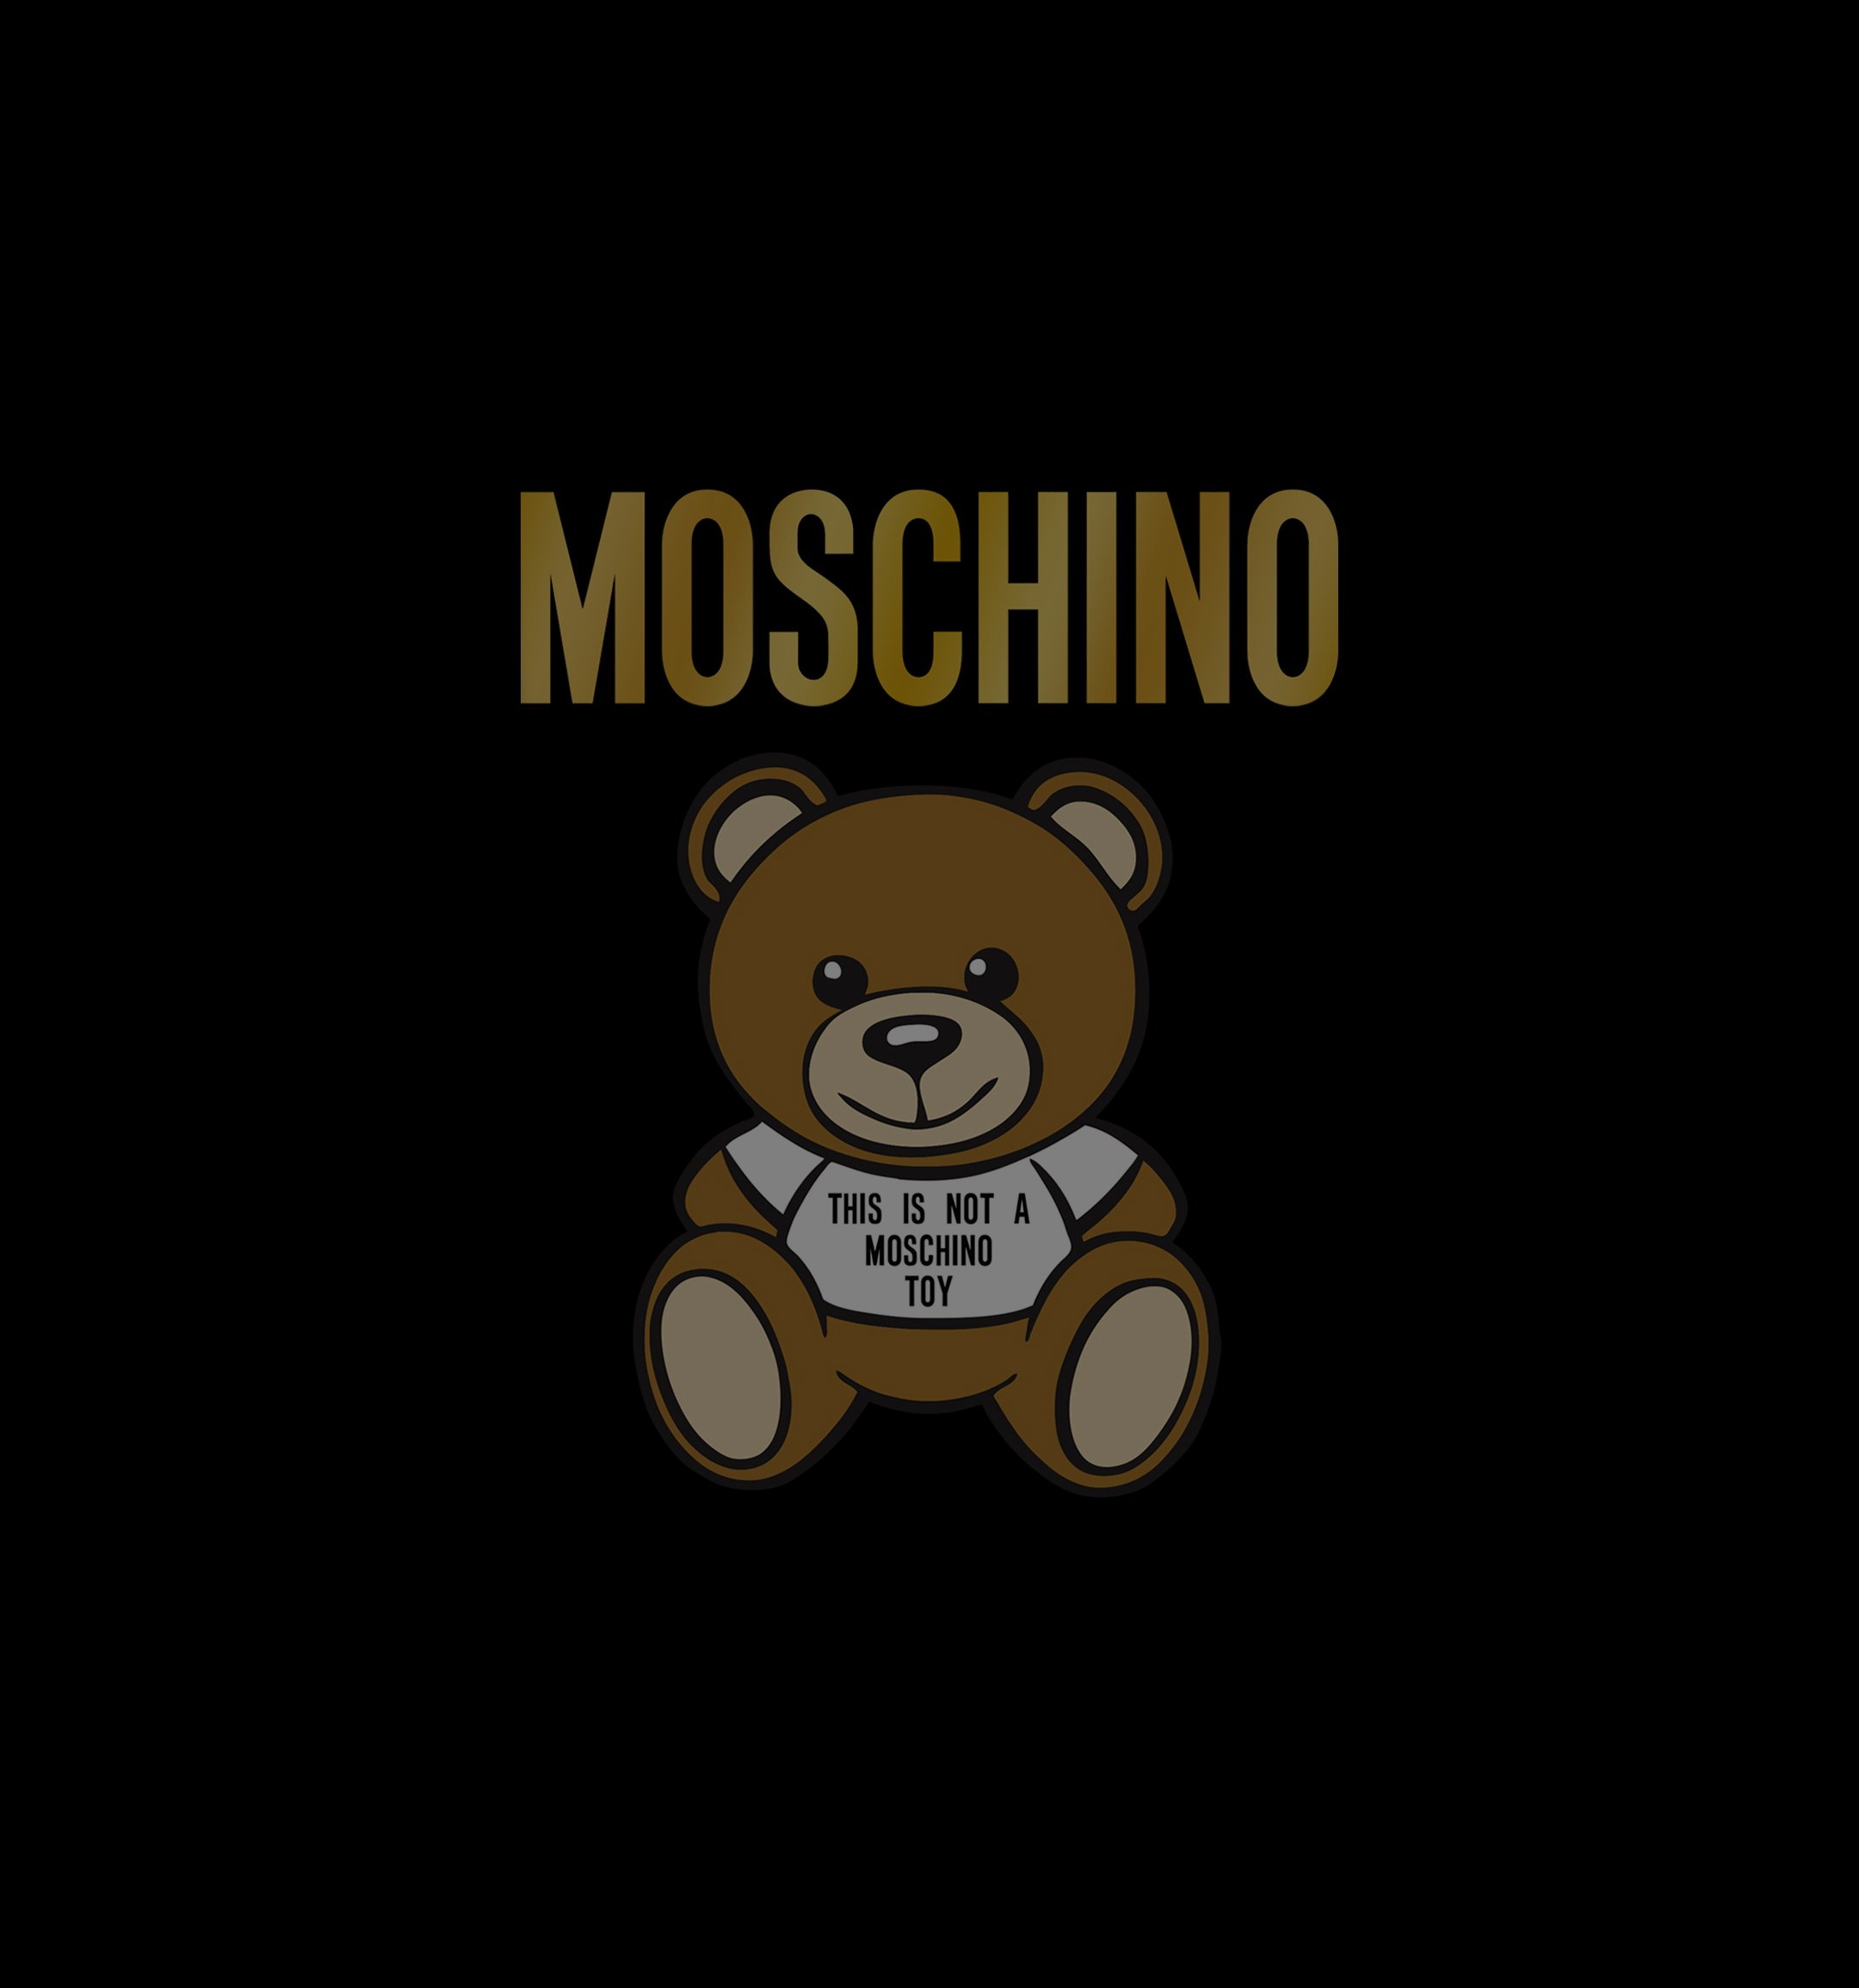 Honor V20 Moschino Teddybear   [2160x2310] 2160x2310